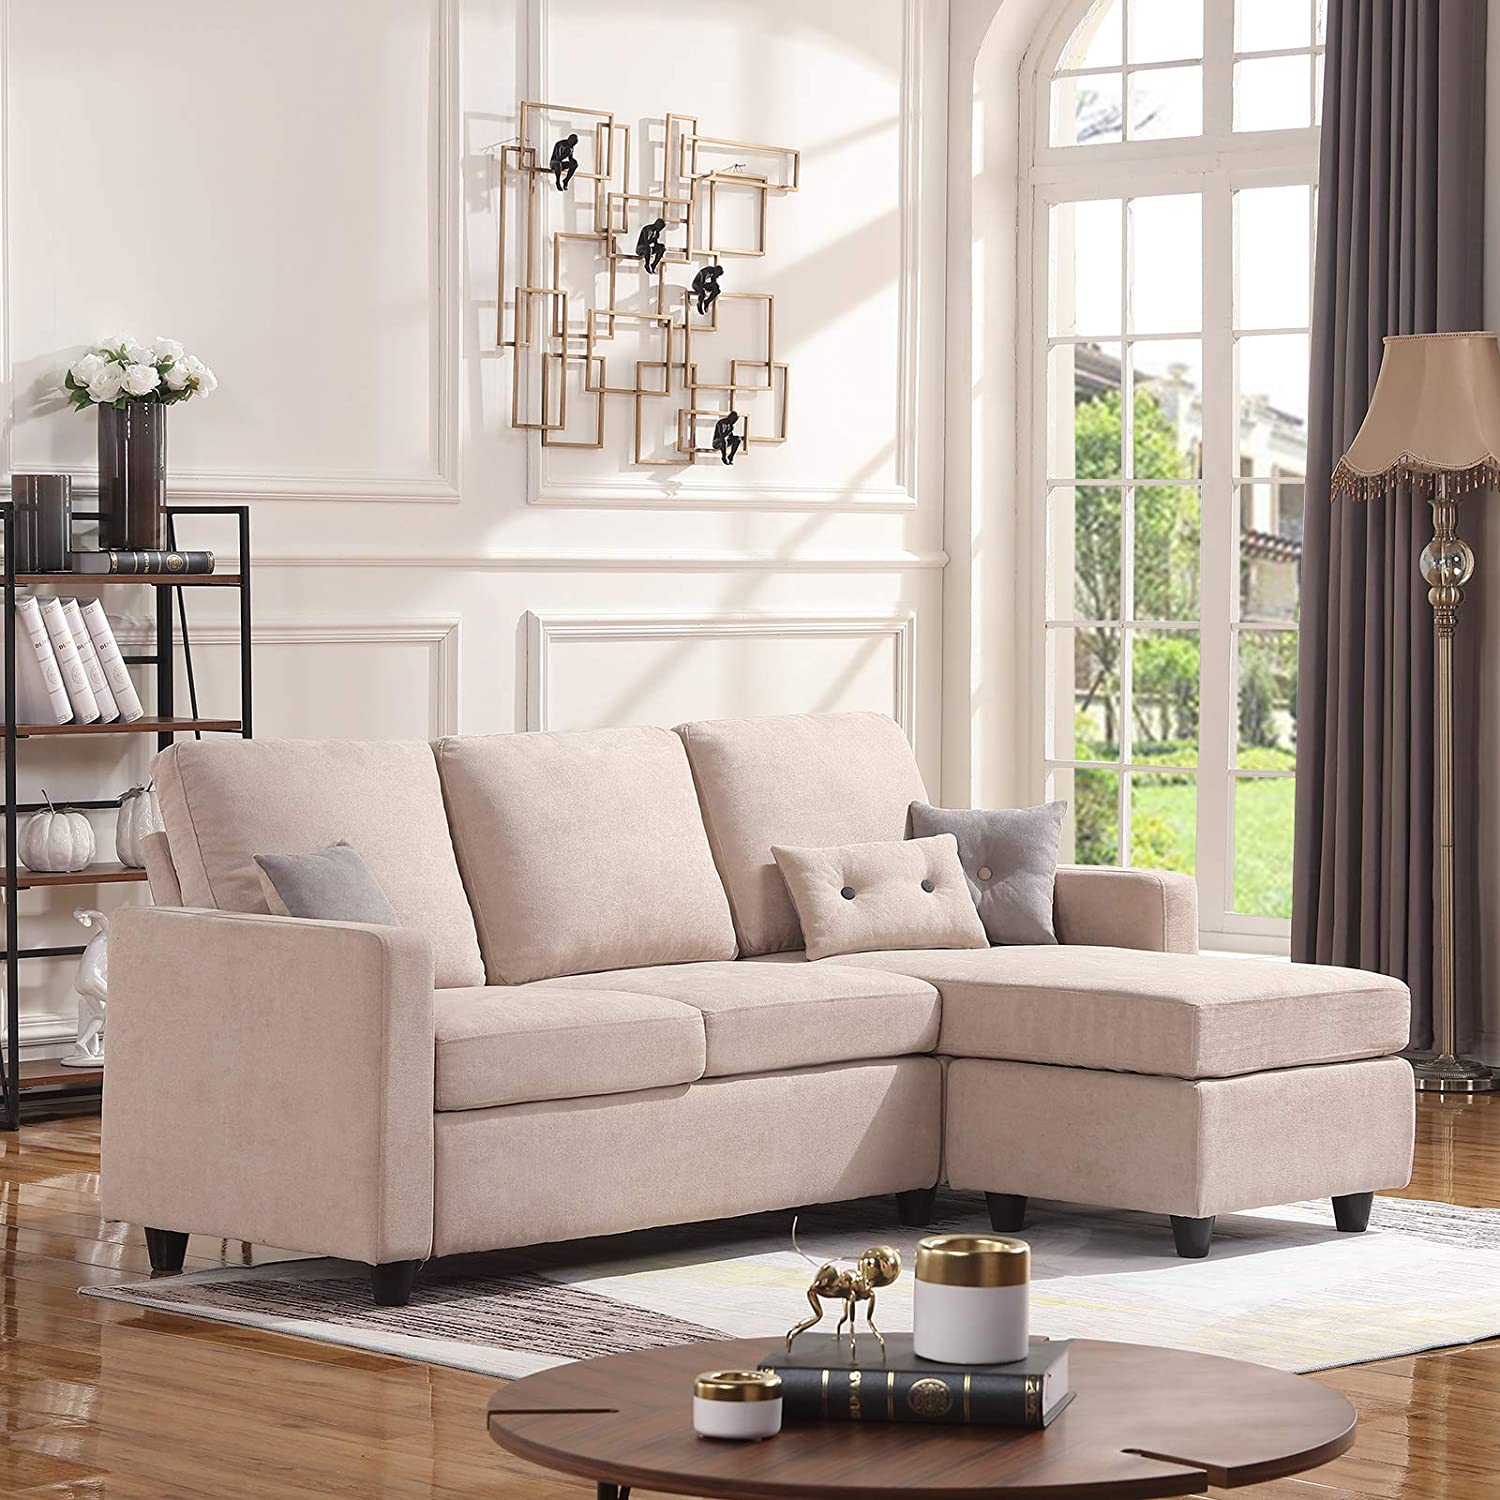 7 Best Sectional Sofa Under 1000